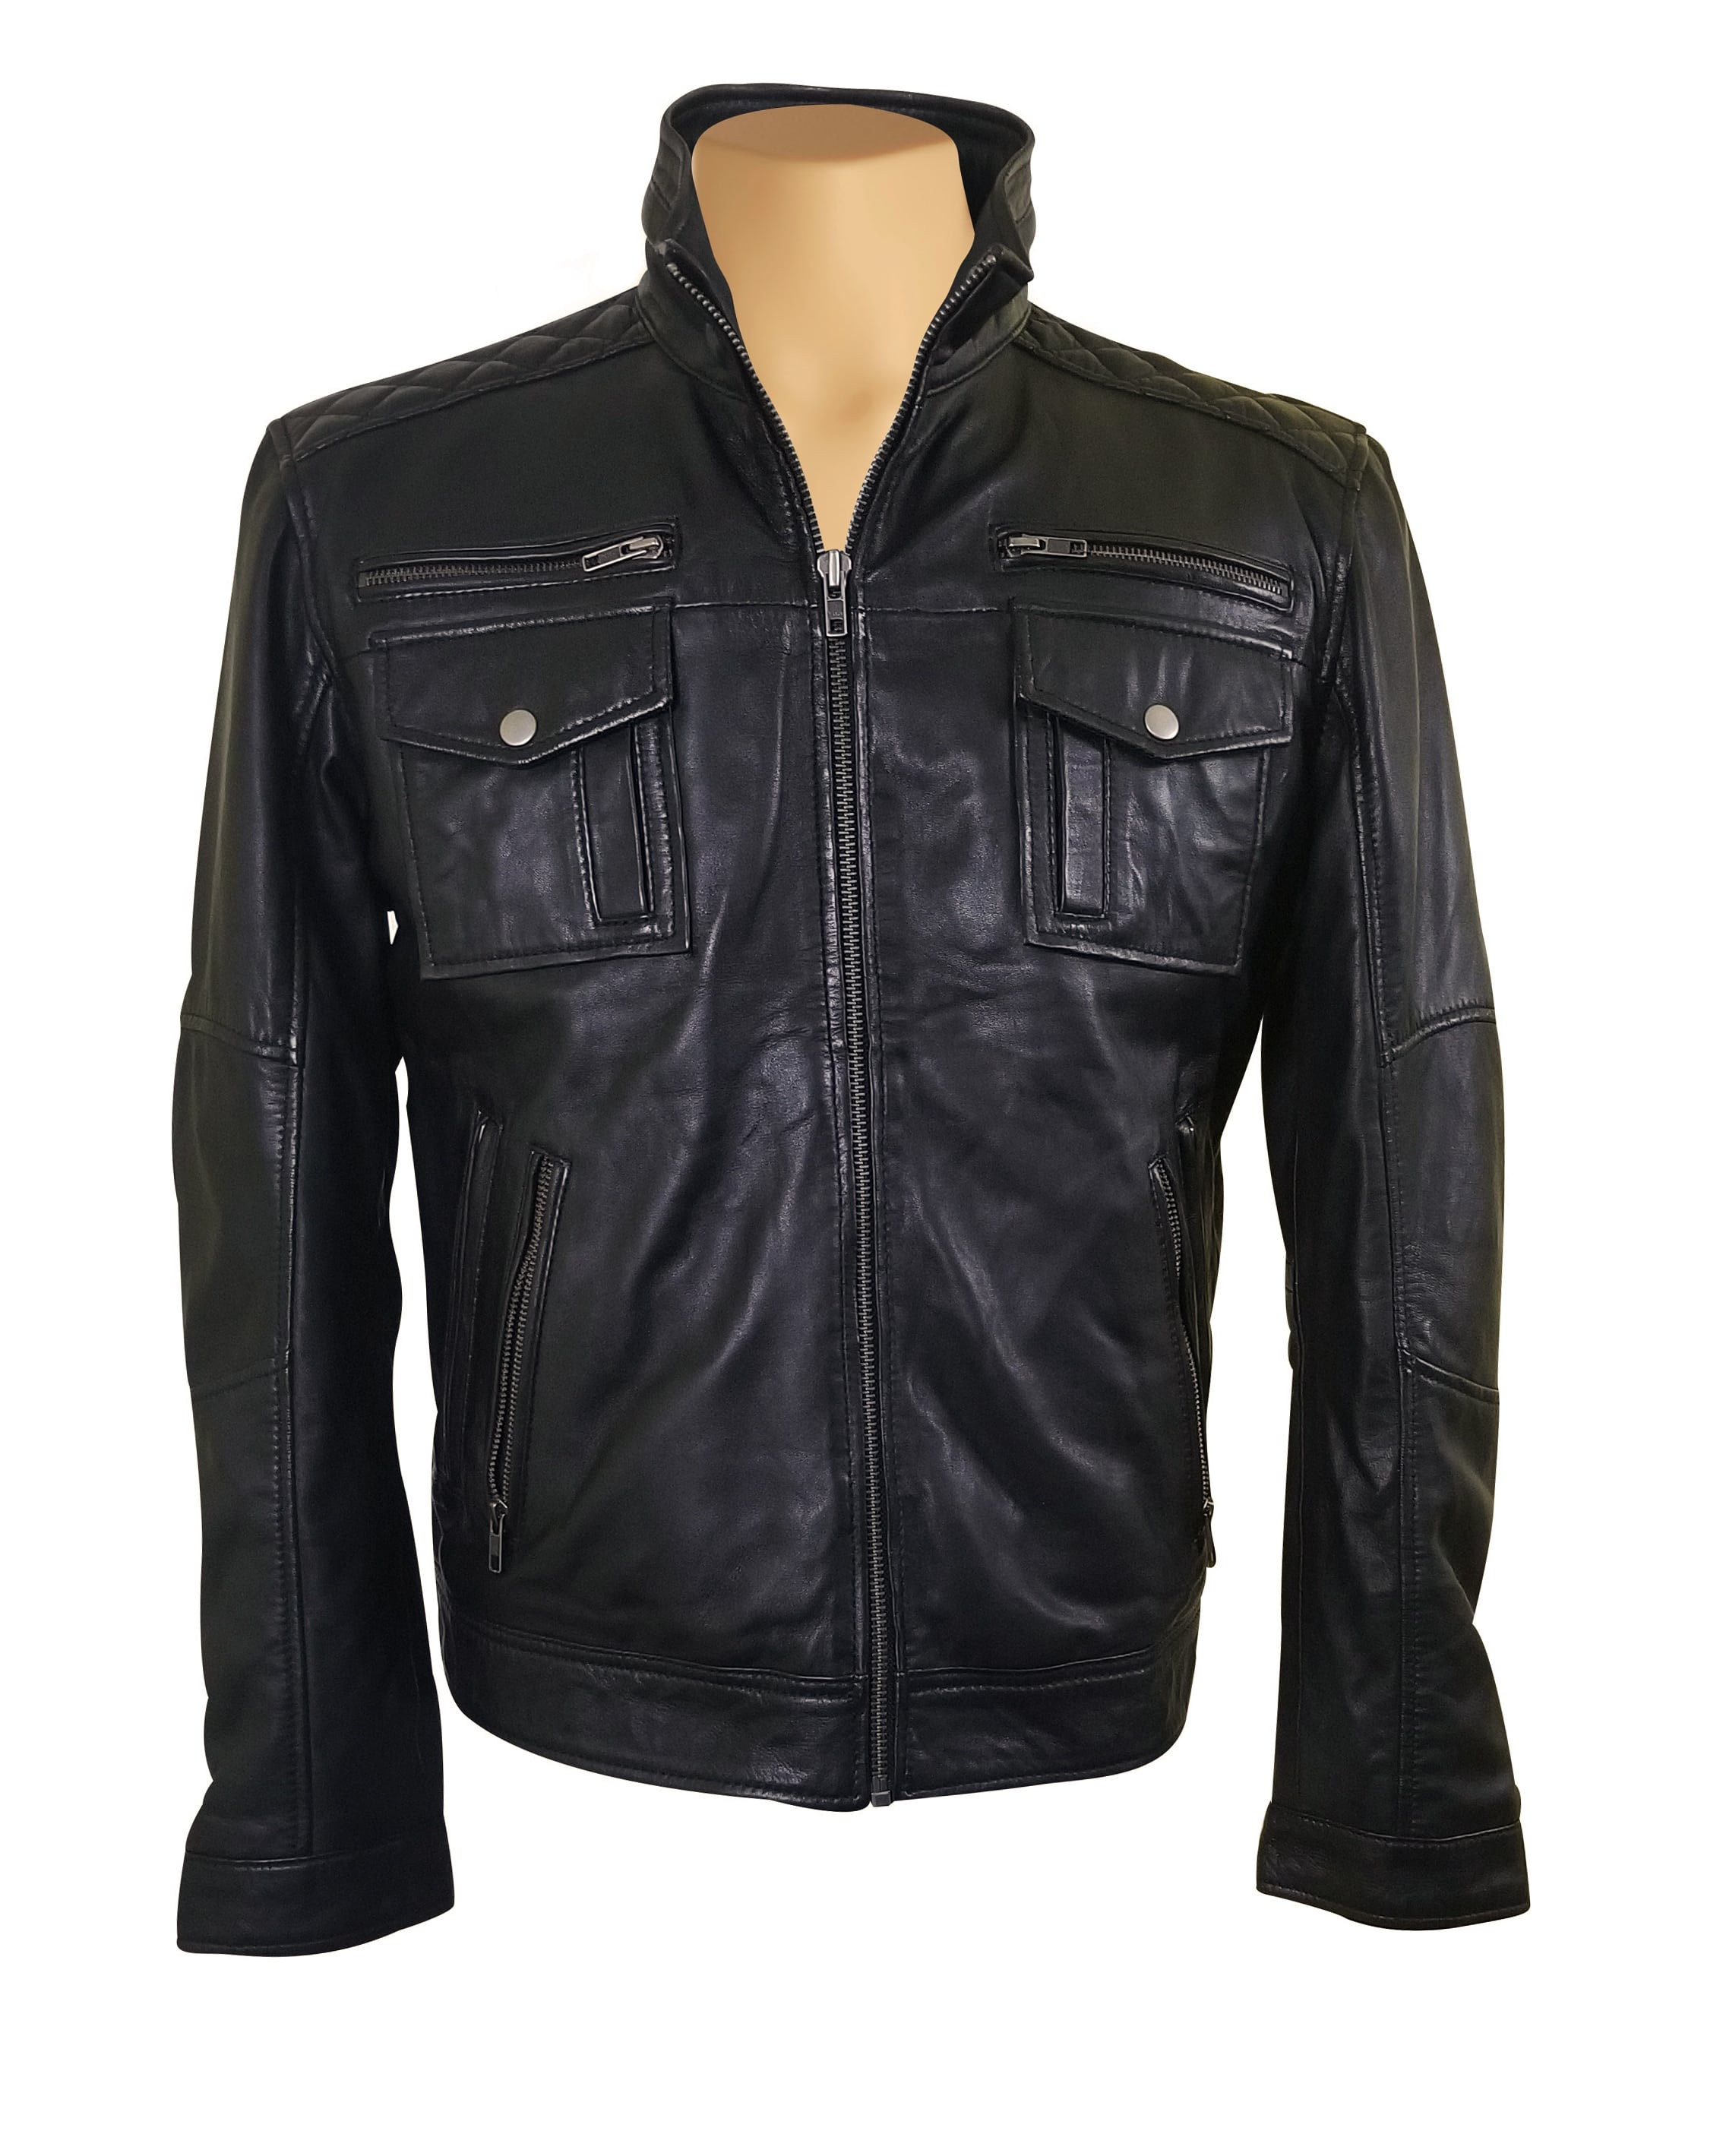 Benson zip up leather jacket with flap pockets